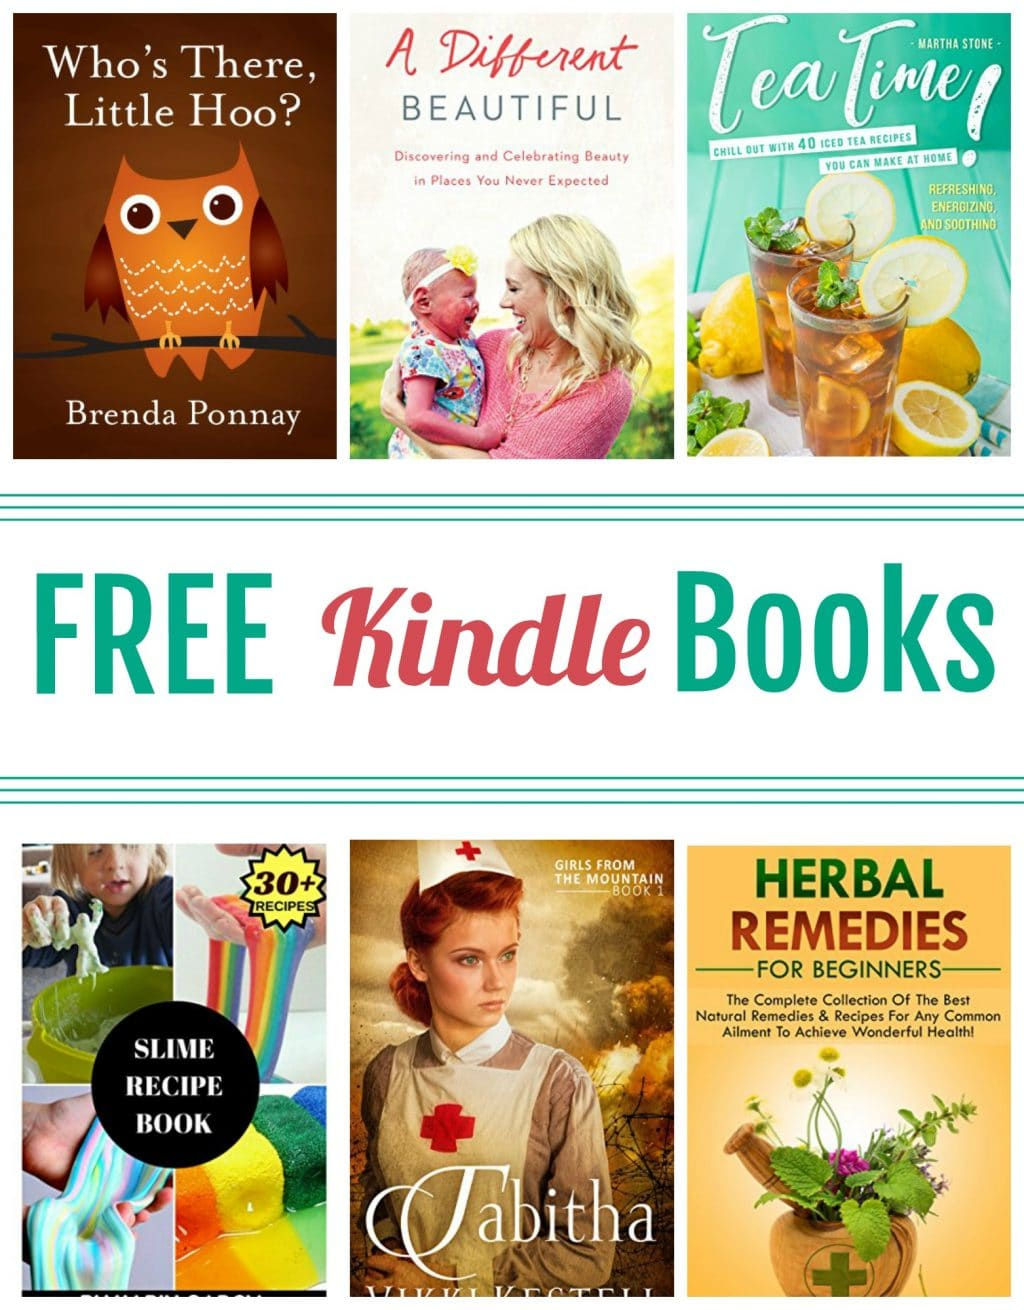 15 Kindle Freebies: A Different Beautiful, Slime Recipe Book, & More!